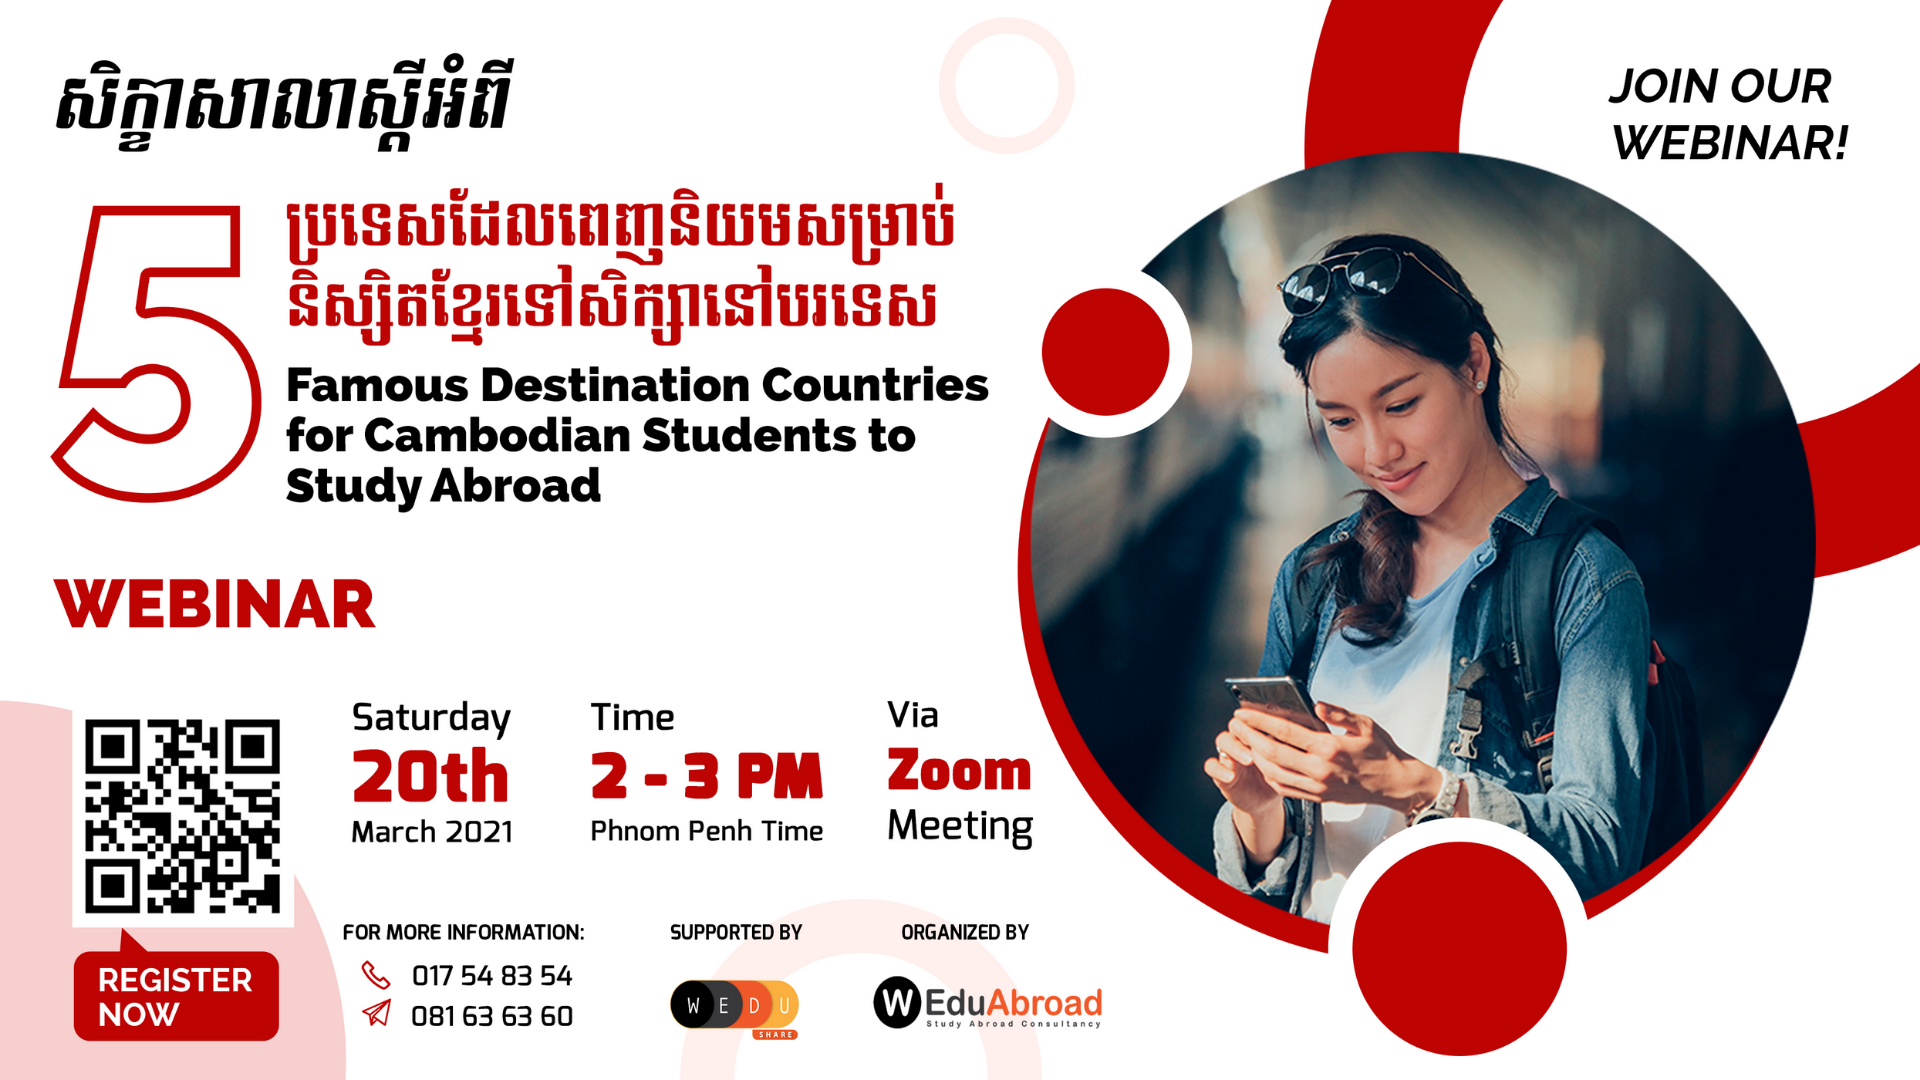 5 Famous Destination Countries for Cambodian Students to Study Abroad Webinar